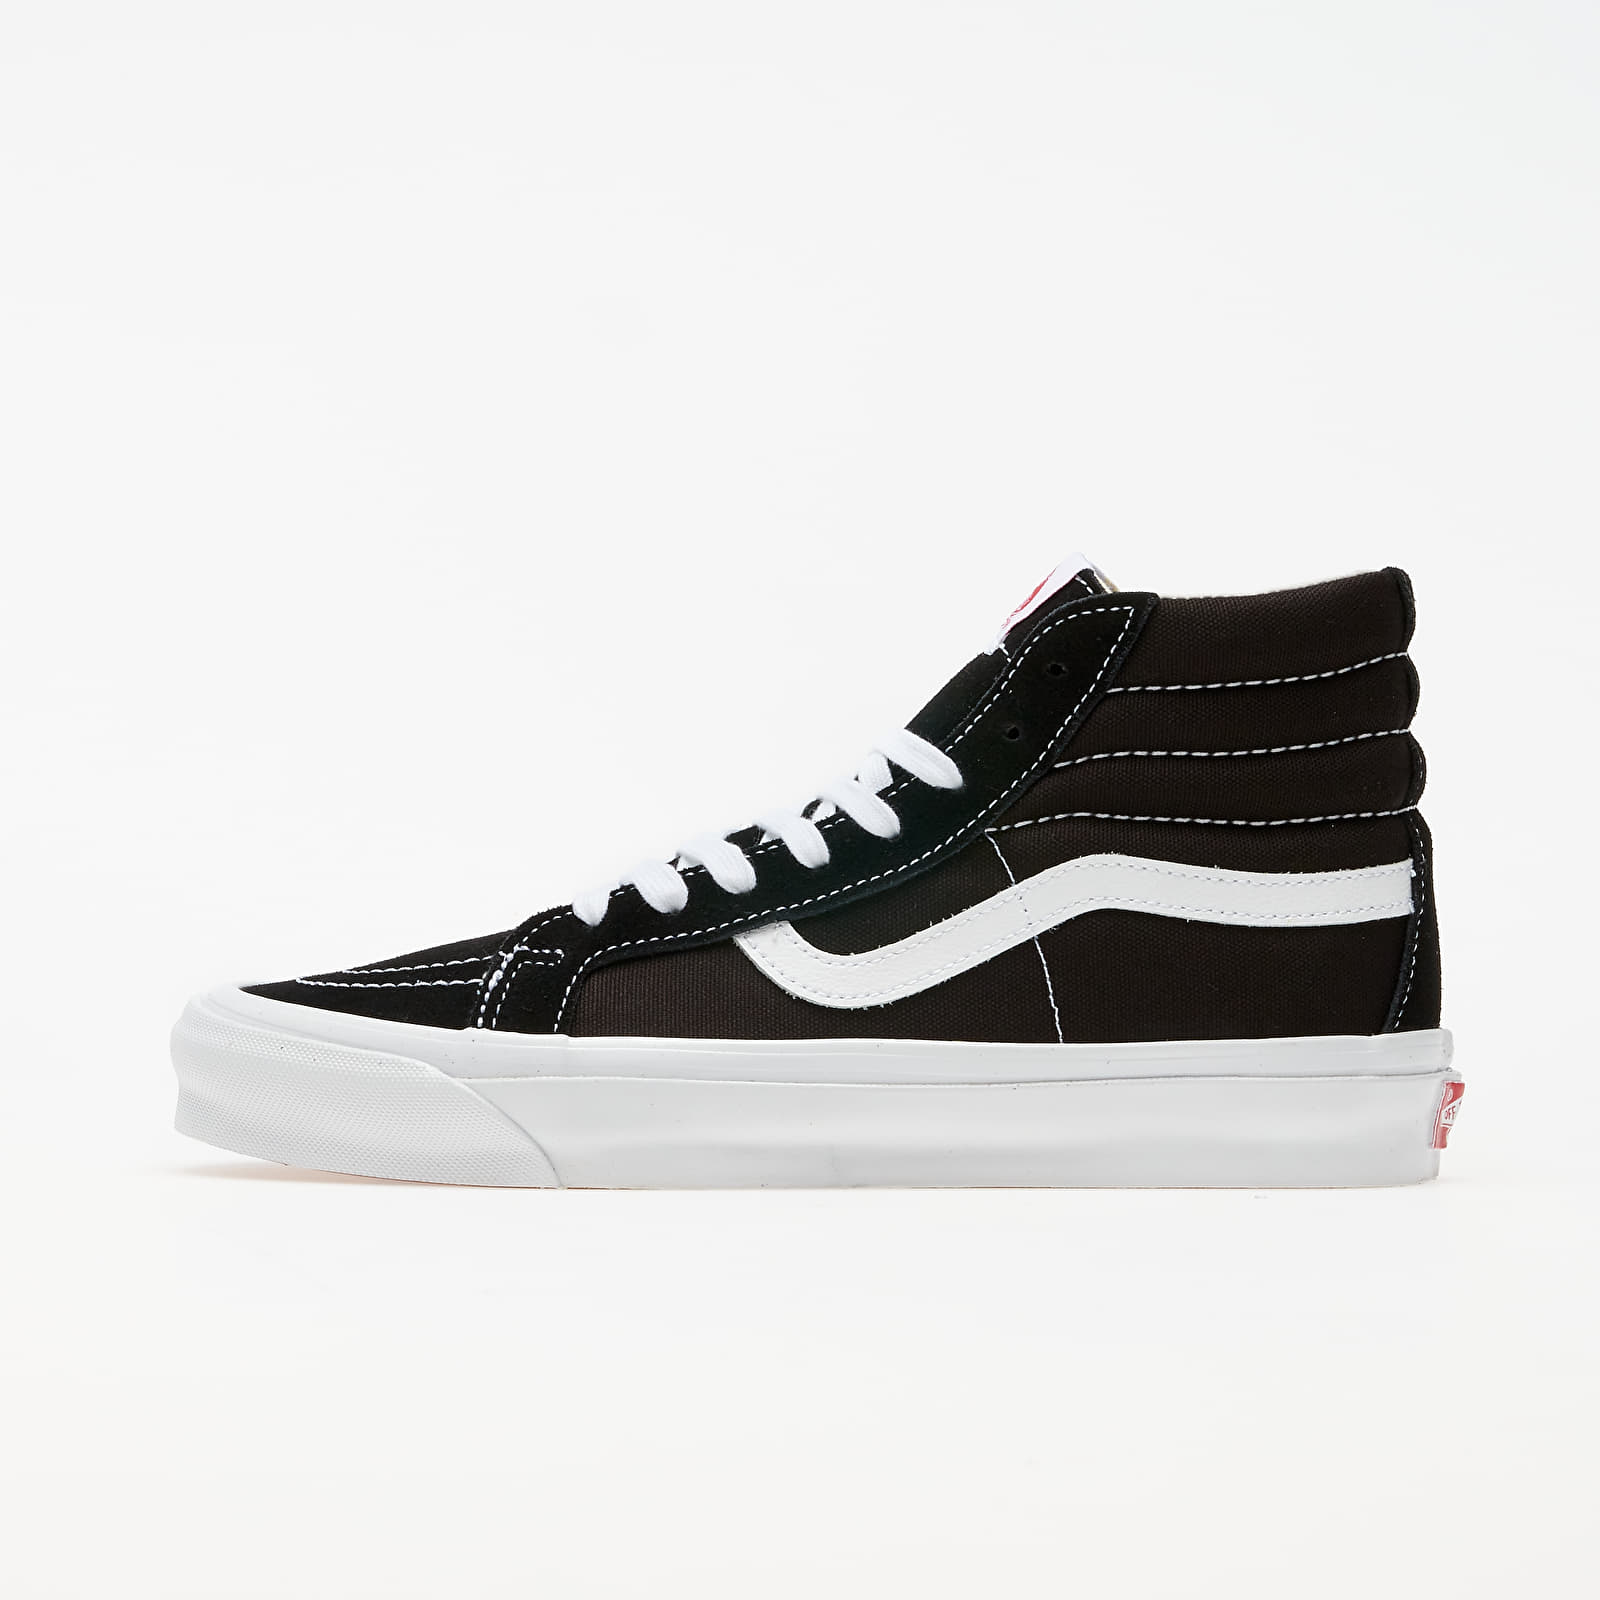 Férfi cipők Vans OG Sk8-Hi LX (Suede/ Canvas) Black/ True White